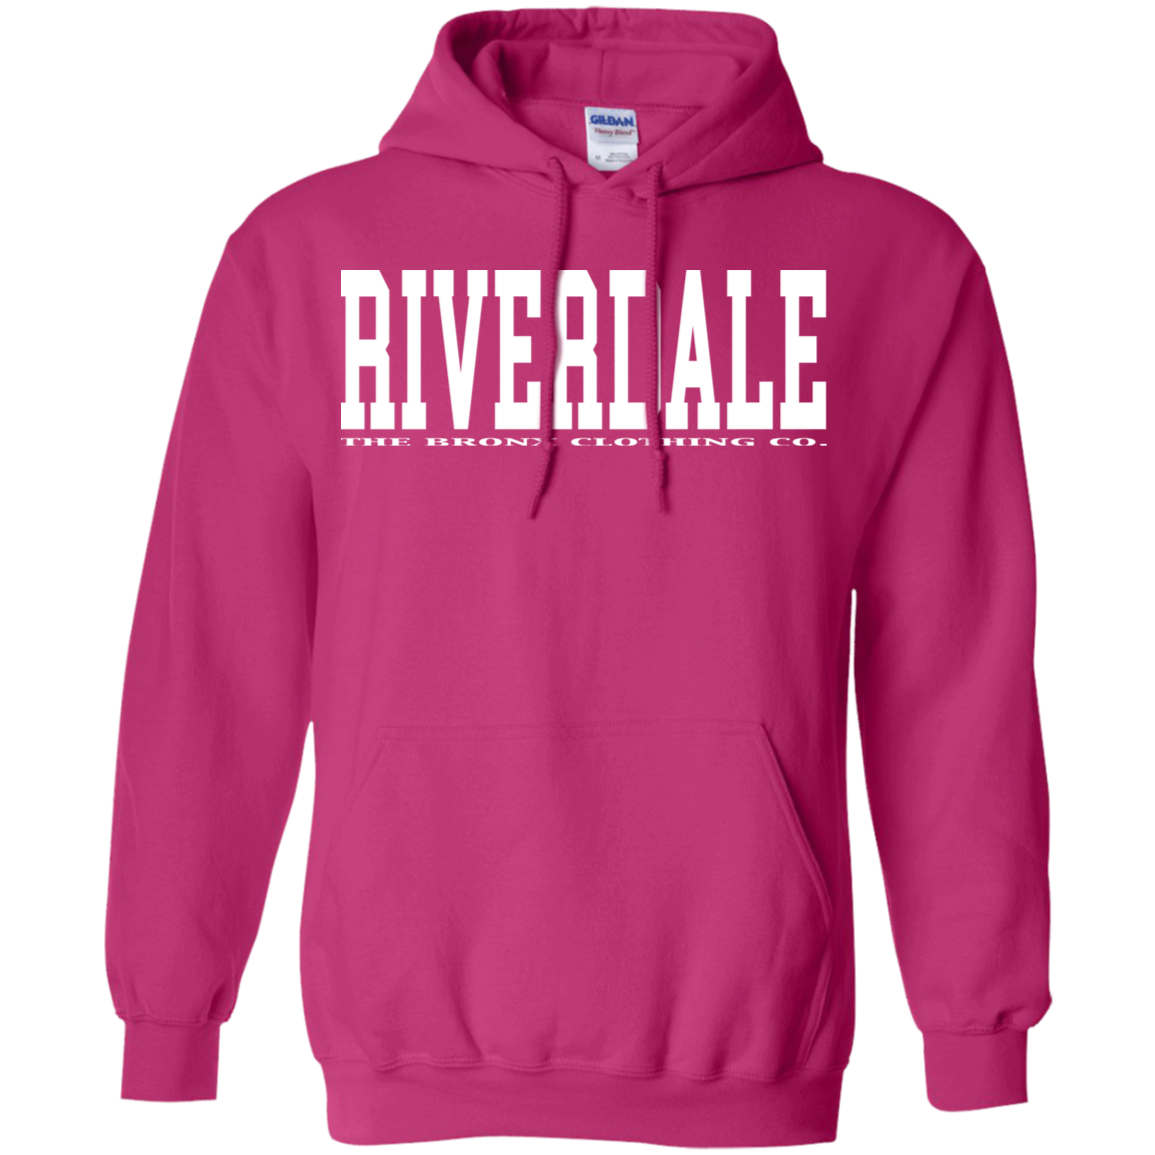 Riverdale - Neighborhood Series Hoodie